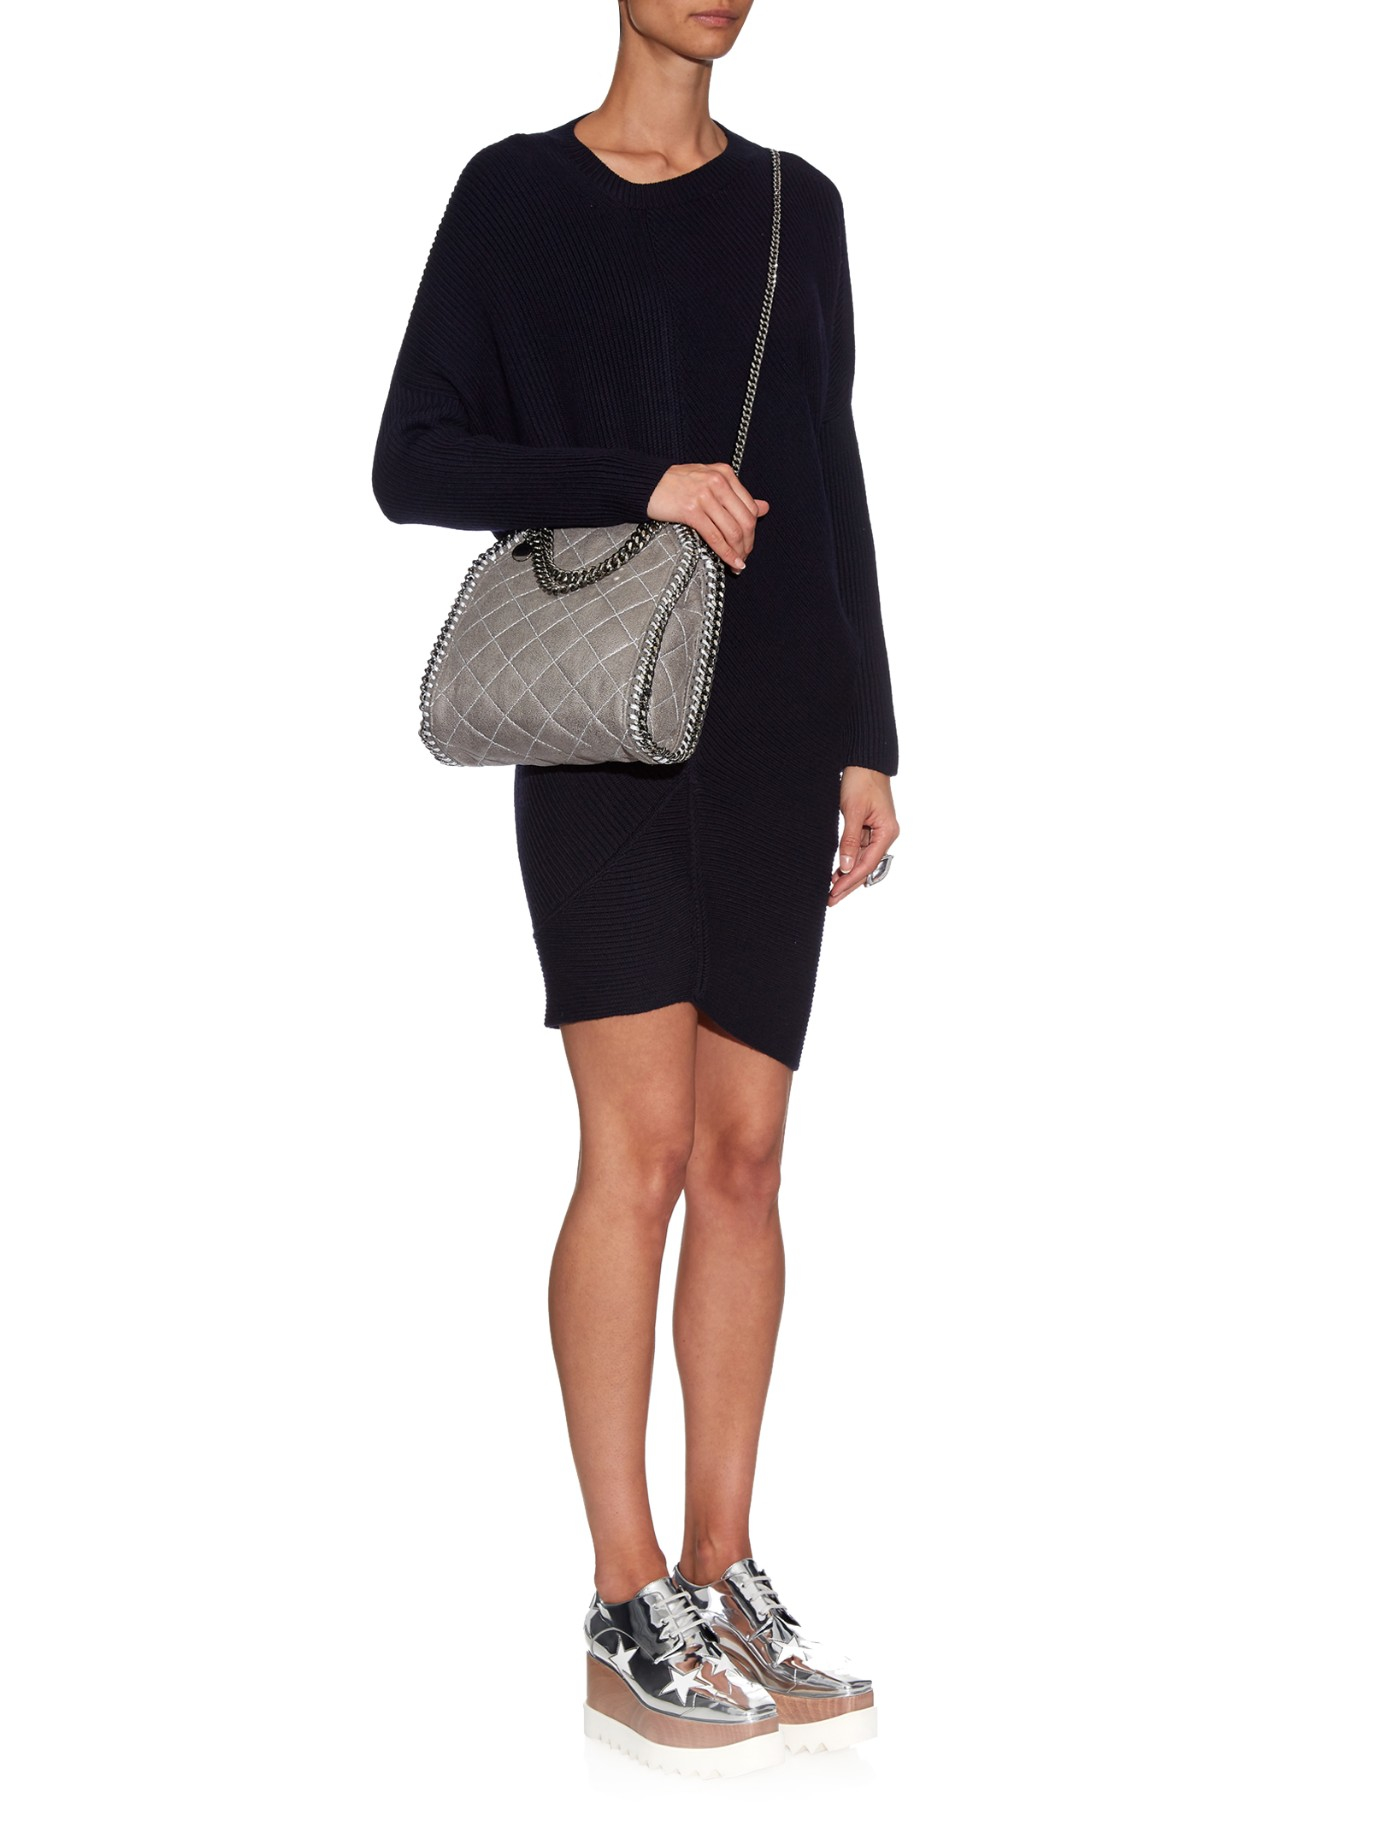 Lyst - Stella McCartney Falabella Small Quilted Cross-Body Bag in Gray 2b990057bd73c